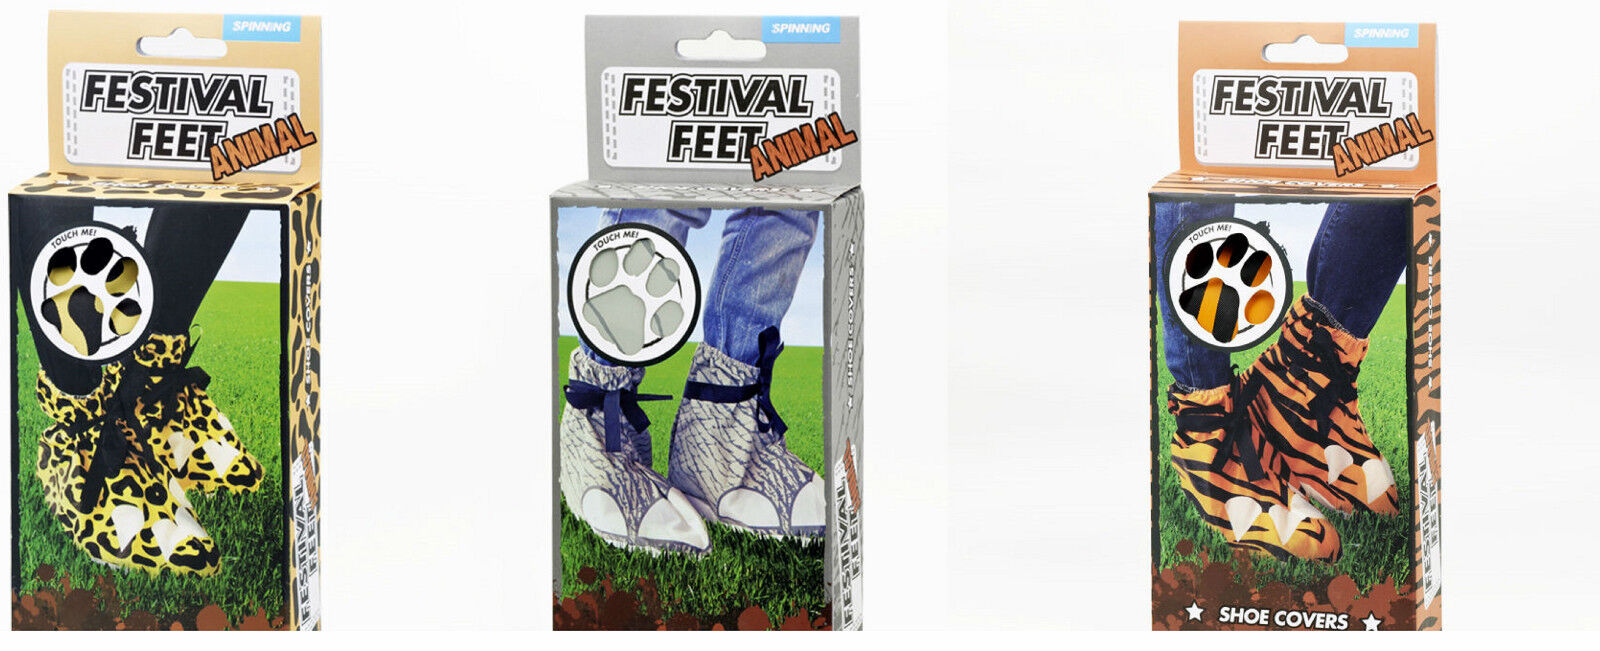 Festival Feet Animal Print Garden Party Disposable Shoes Covers and Protection